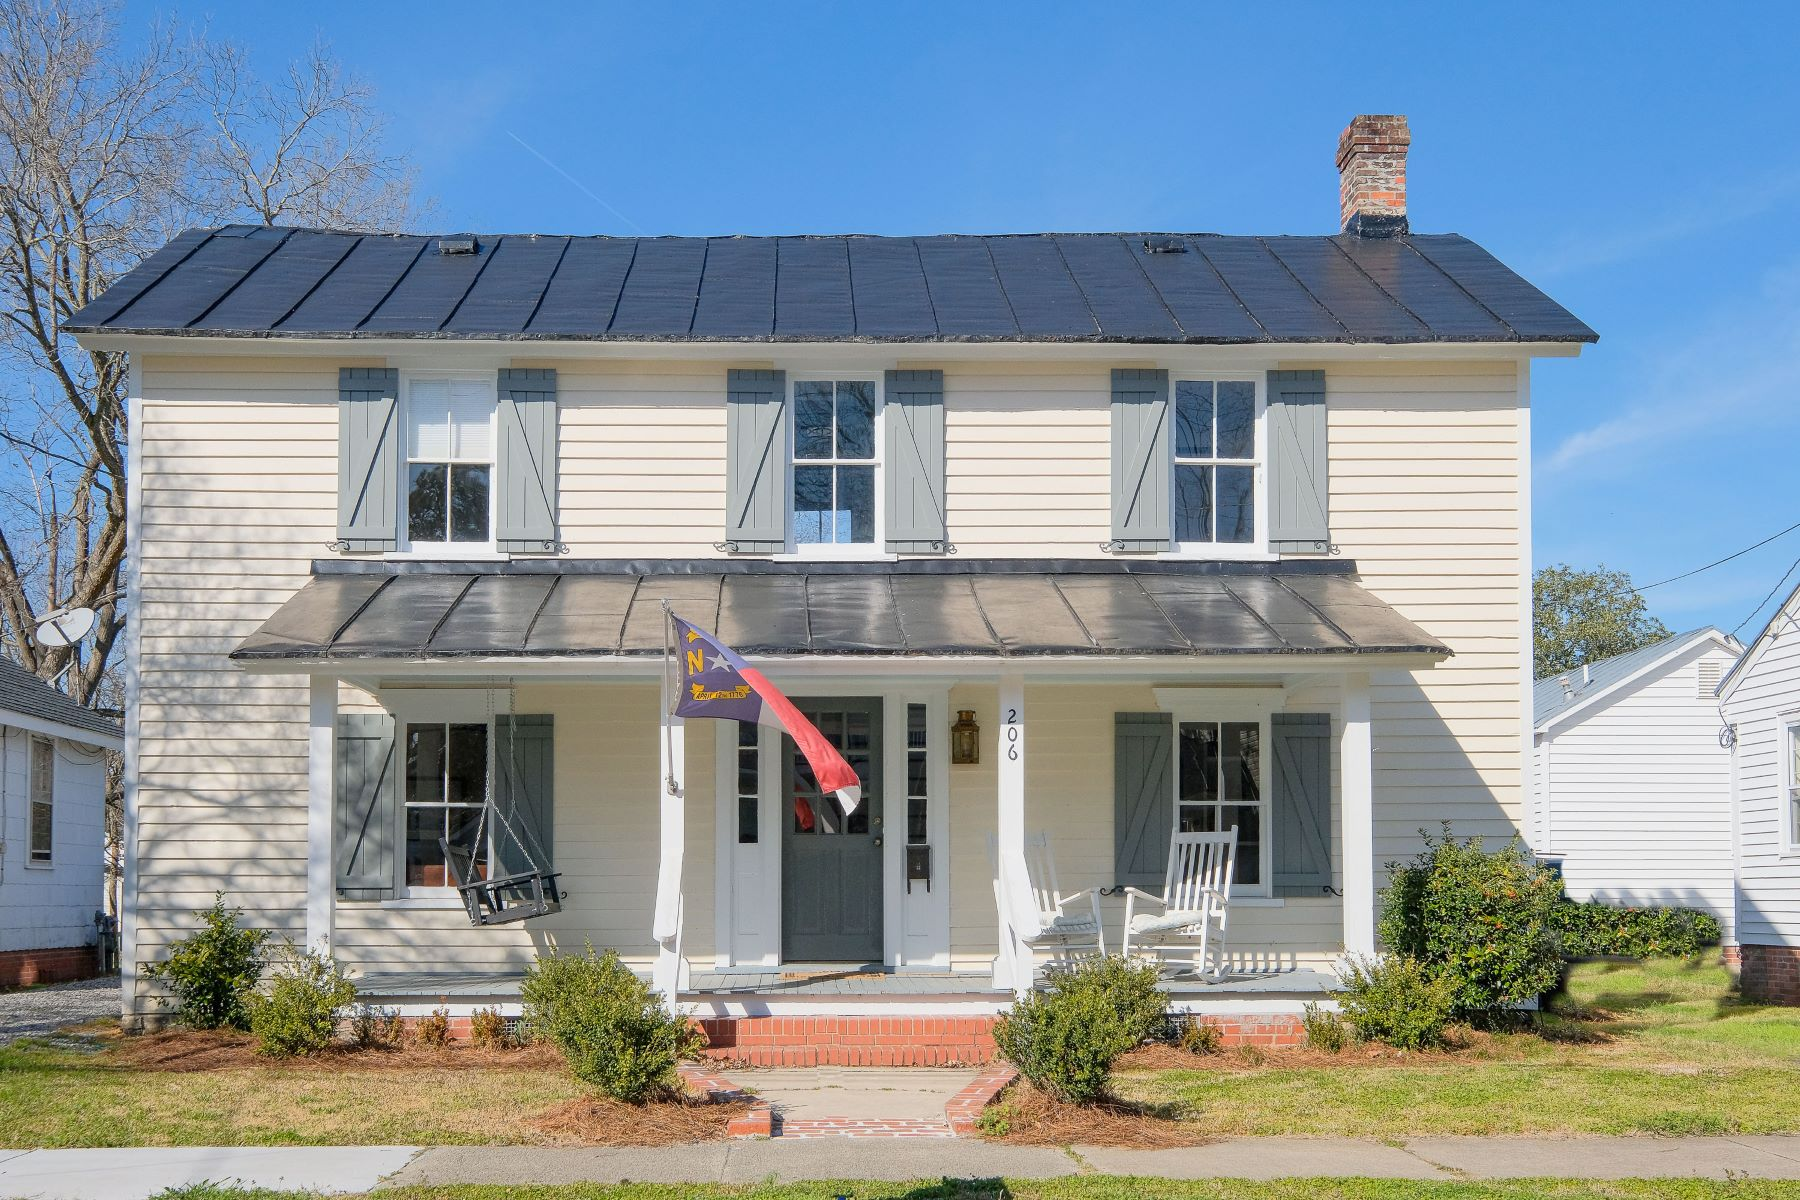 Single Family Homes for Sale at RESTORED DOWNTOWN FARMHOUSE 206 W Church St, Edenton, North Carolina 27932 United States